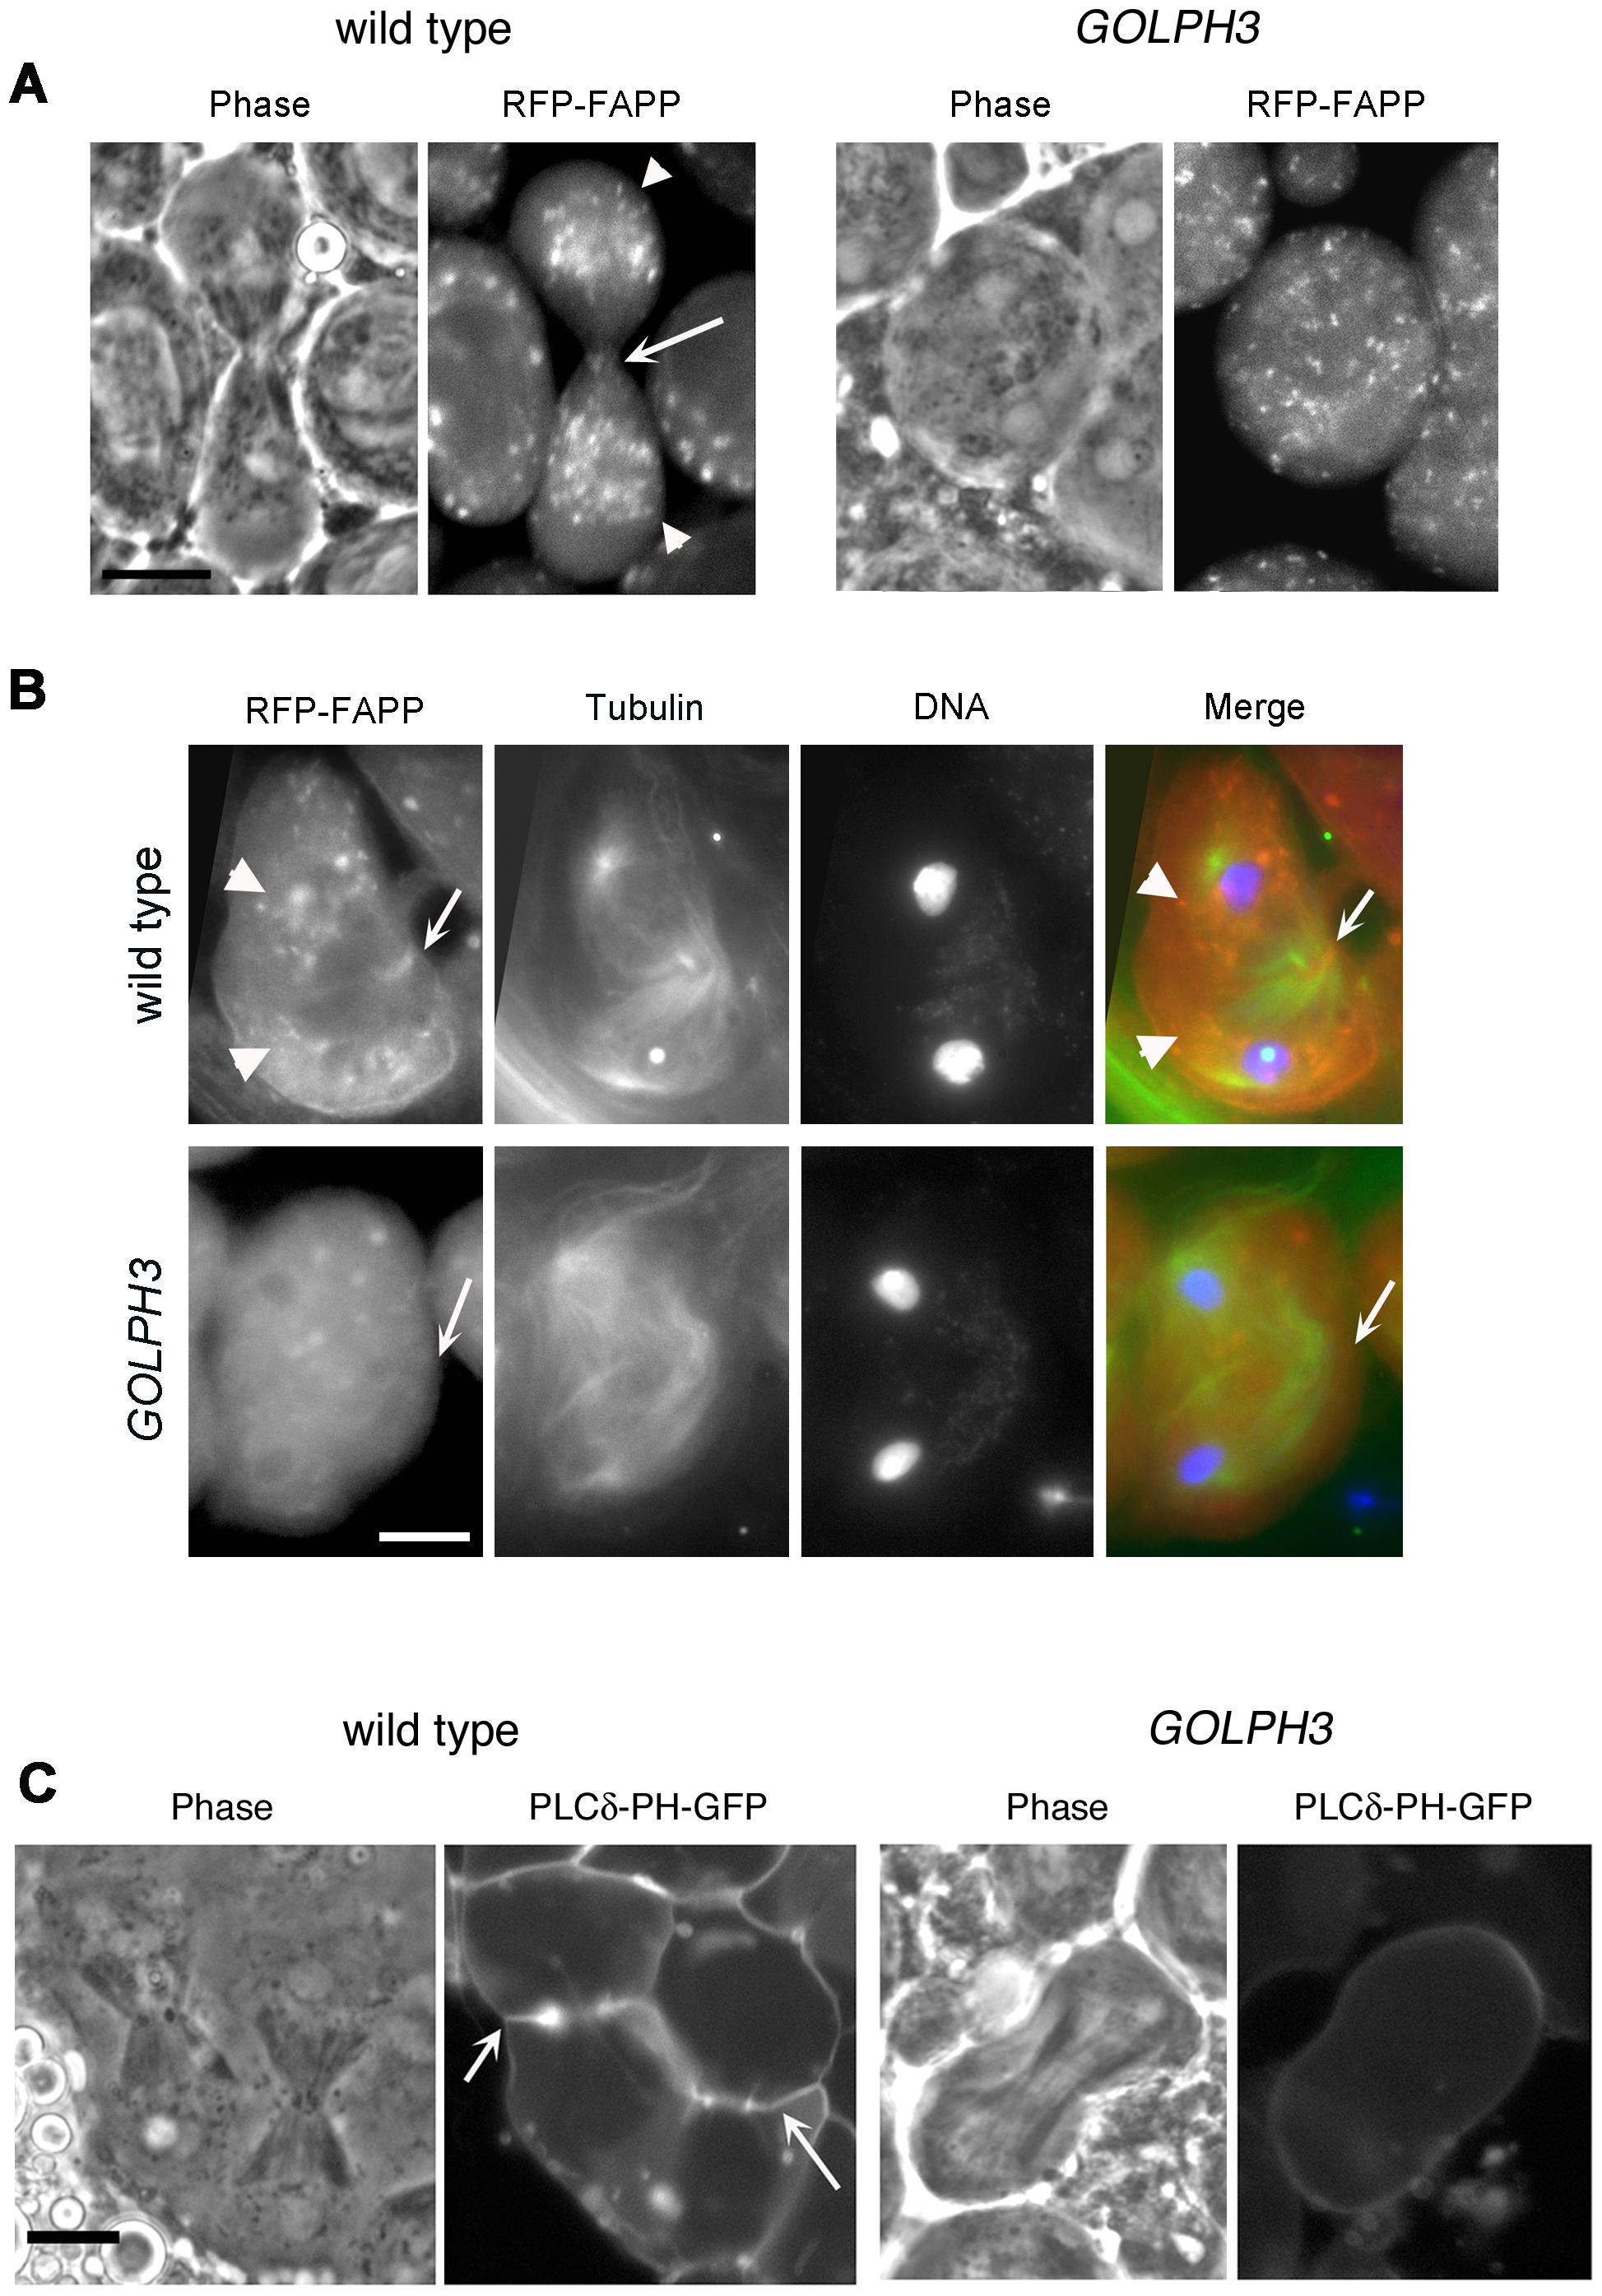 Localization of PI(4)P is disrupted in telophase cells from <i>GOLPH3</i> mutants.